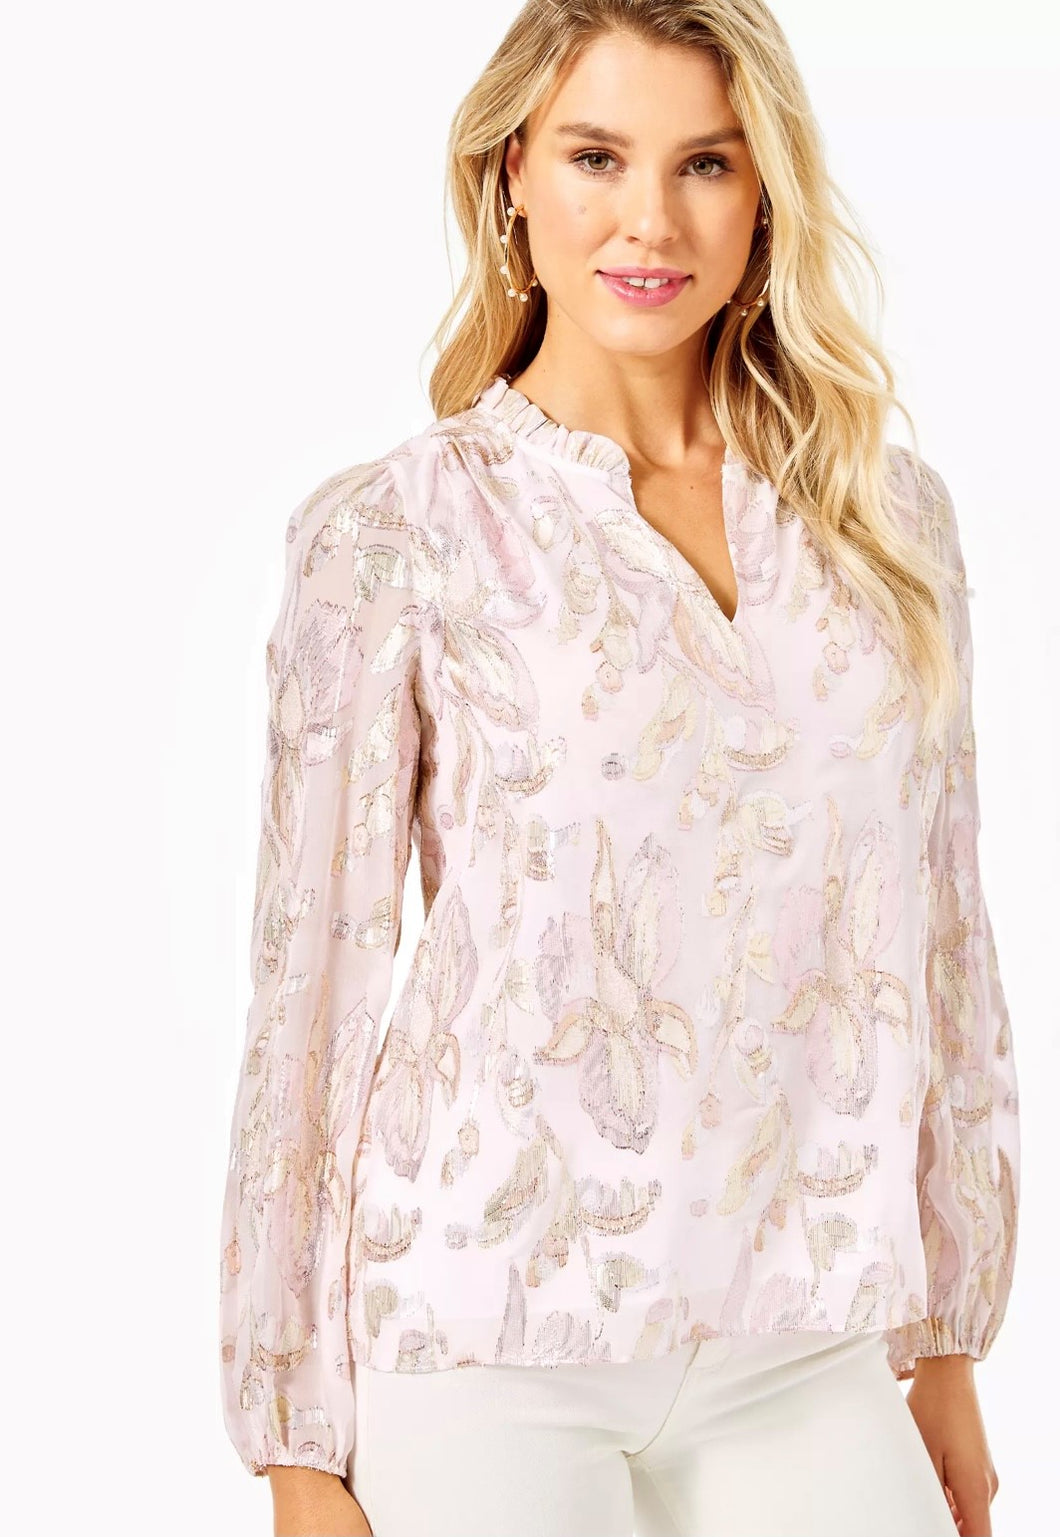 GIANA SILK TOP